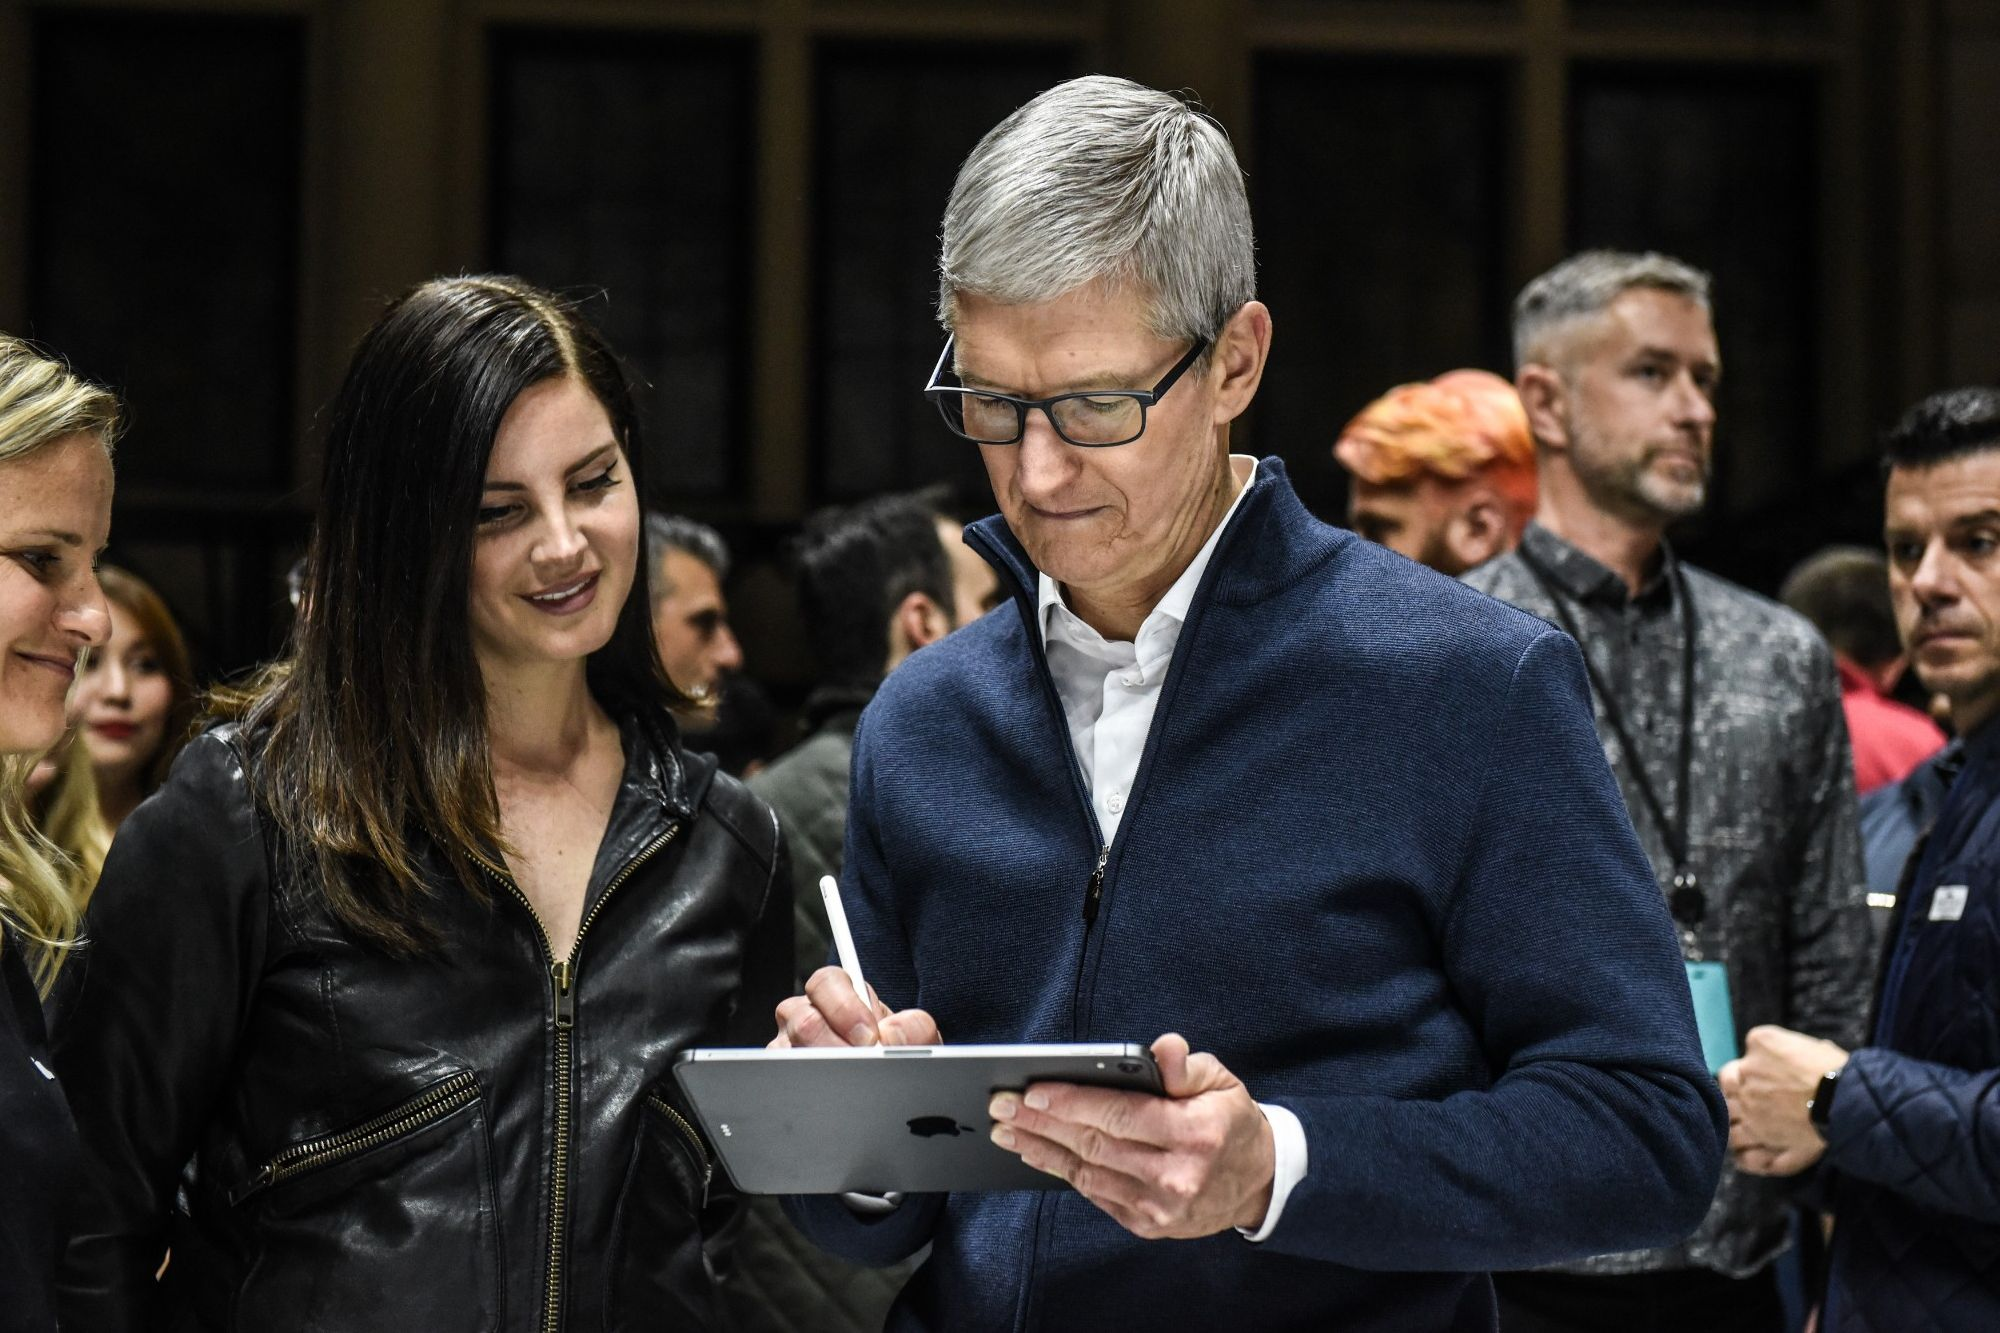 20181102213639 GettyImages 1055498568 - Apple Spooked Analysts Last Night With a New Announcement. Here's How.